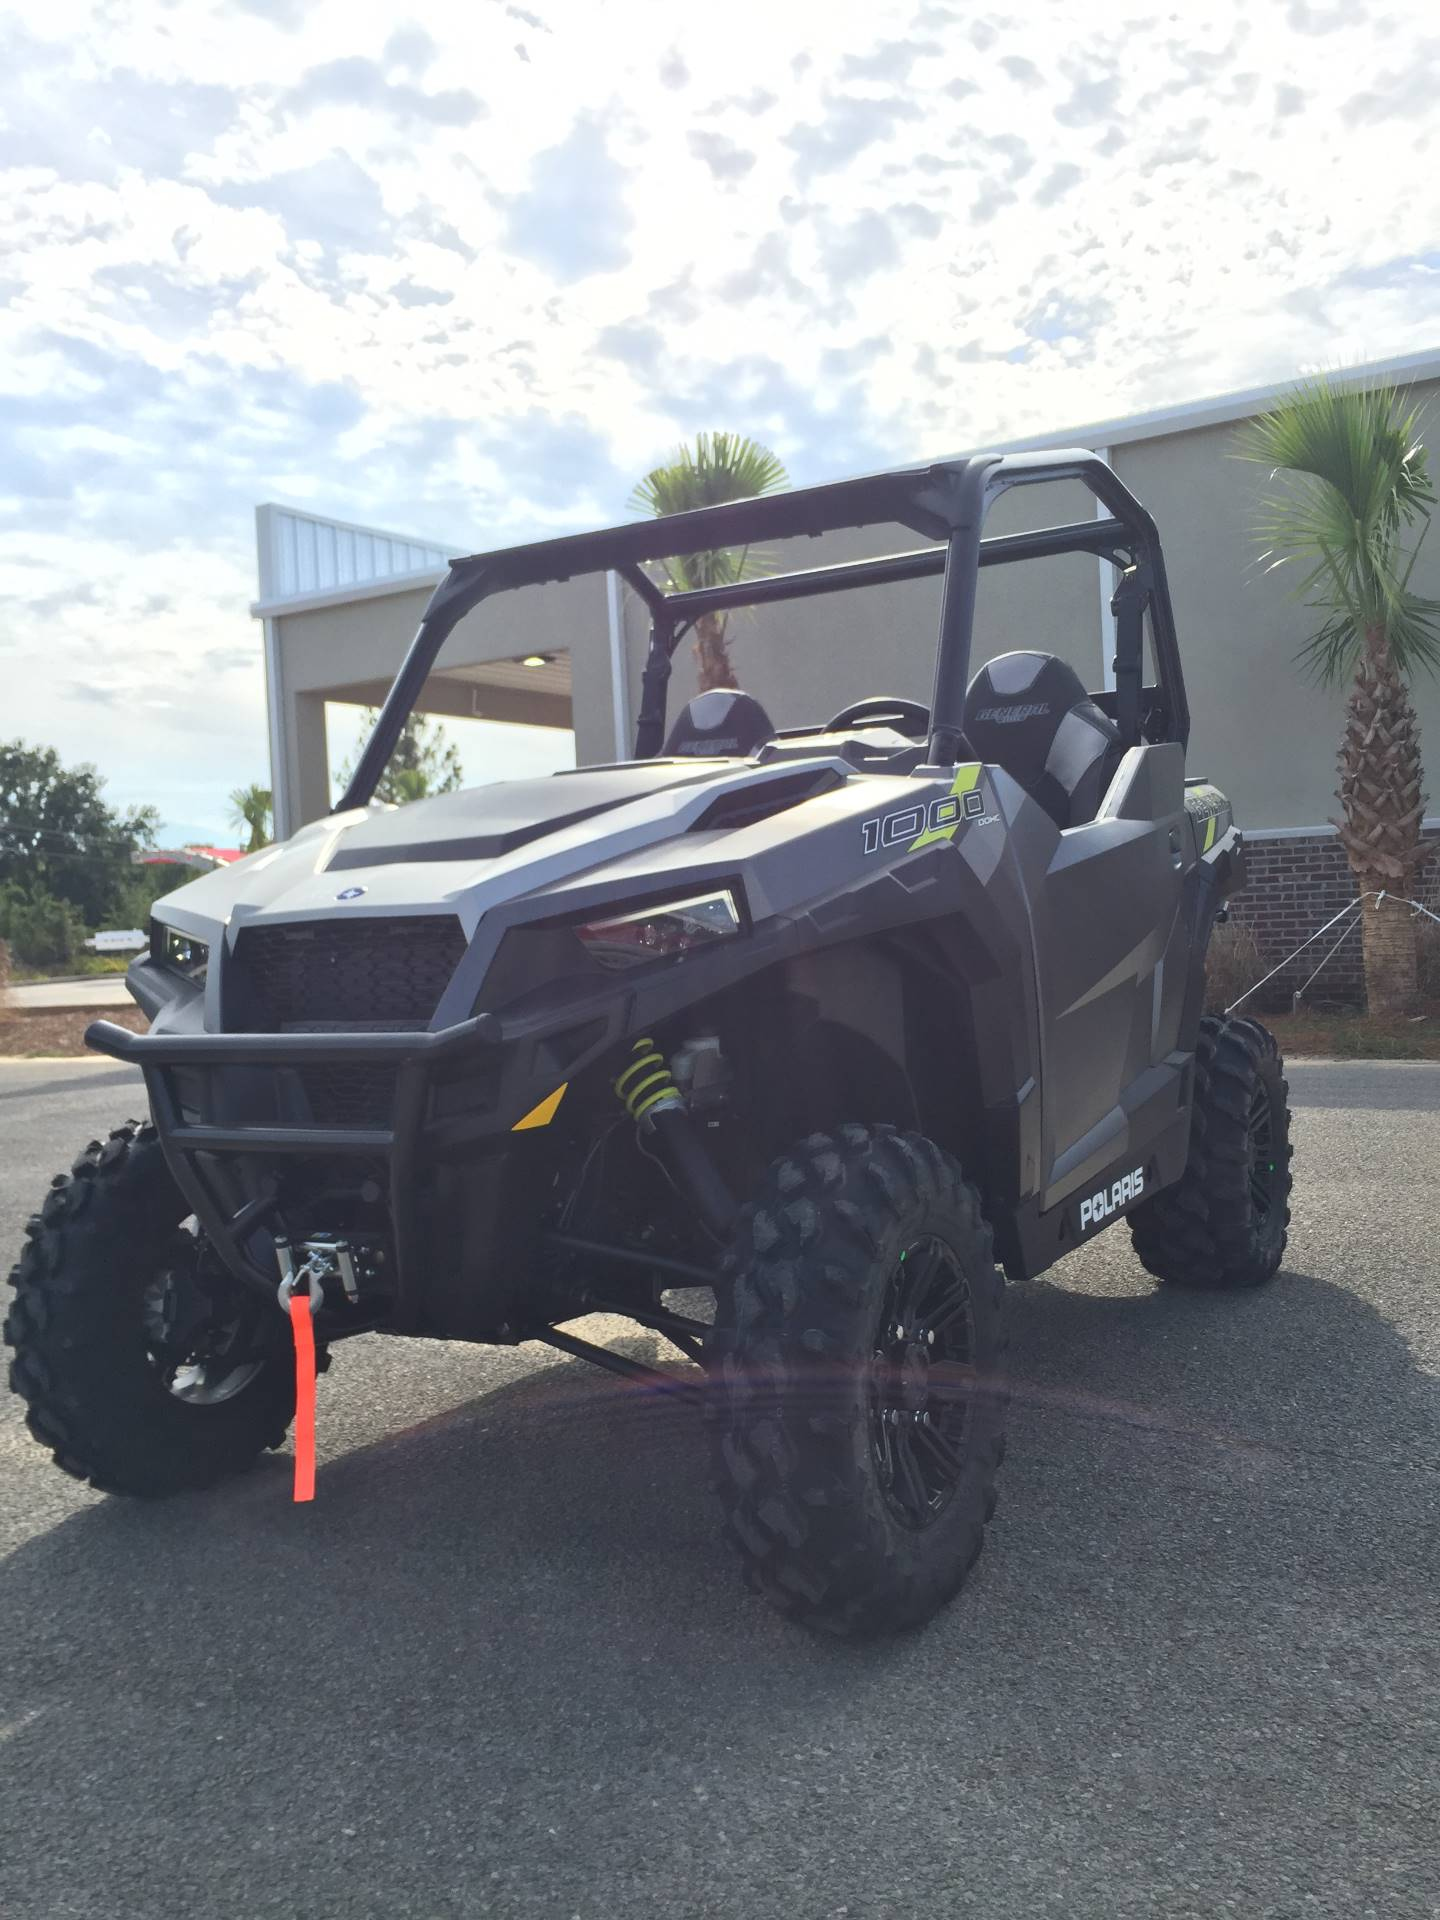 2020 Polaris General 1000 Premium in Pascagoula, Mississippi - Photo 5